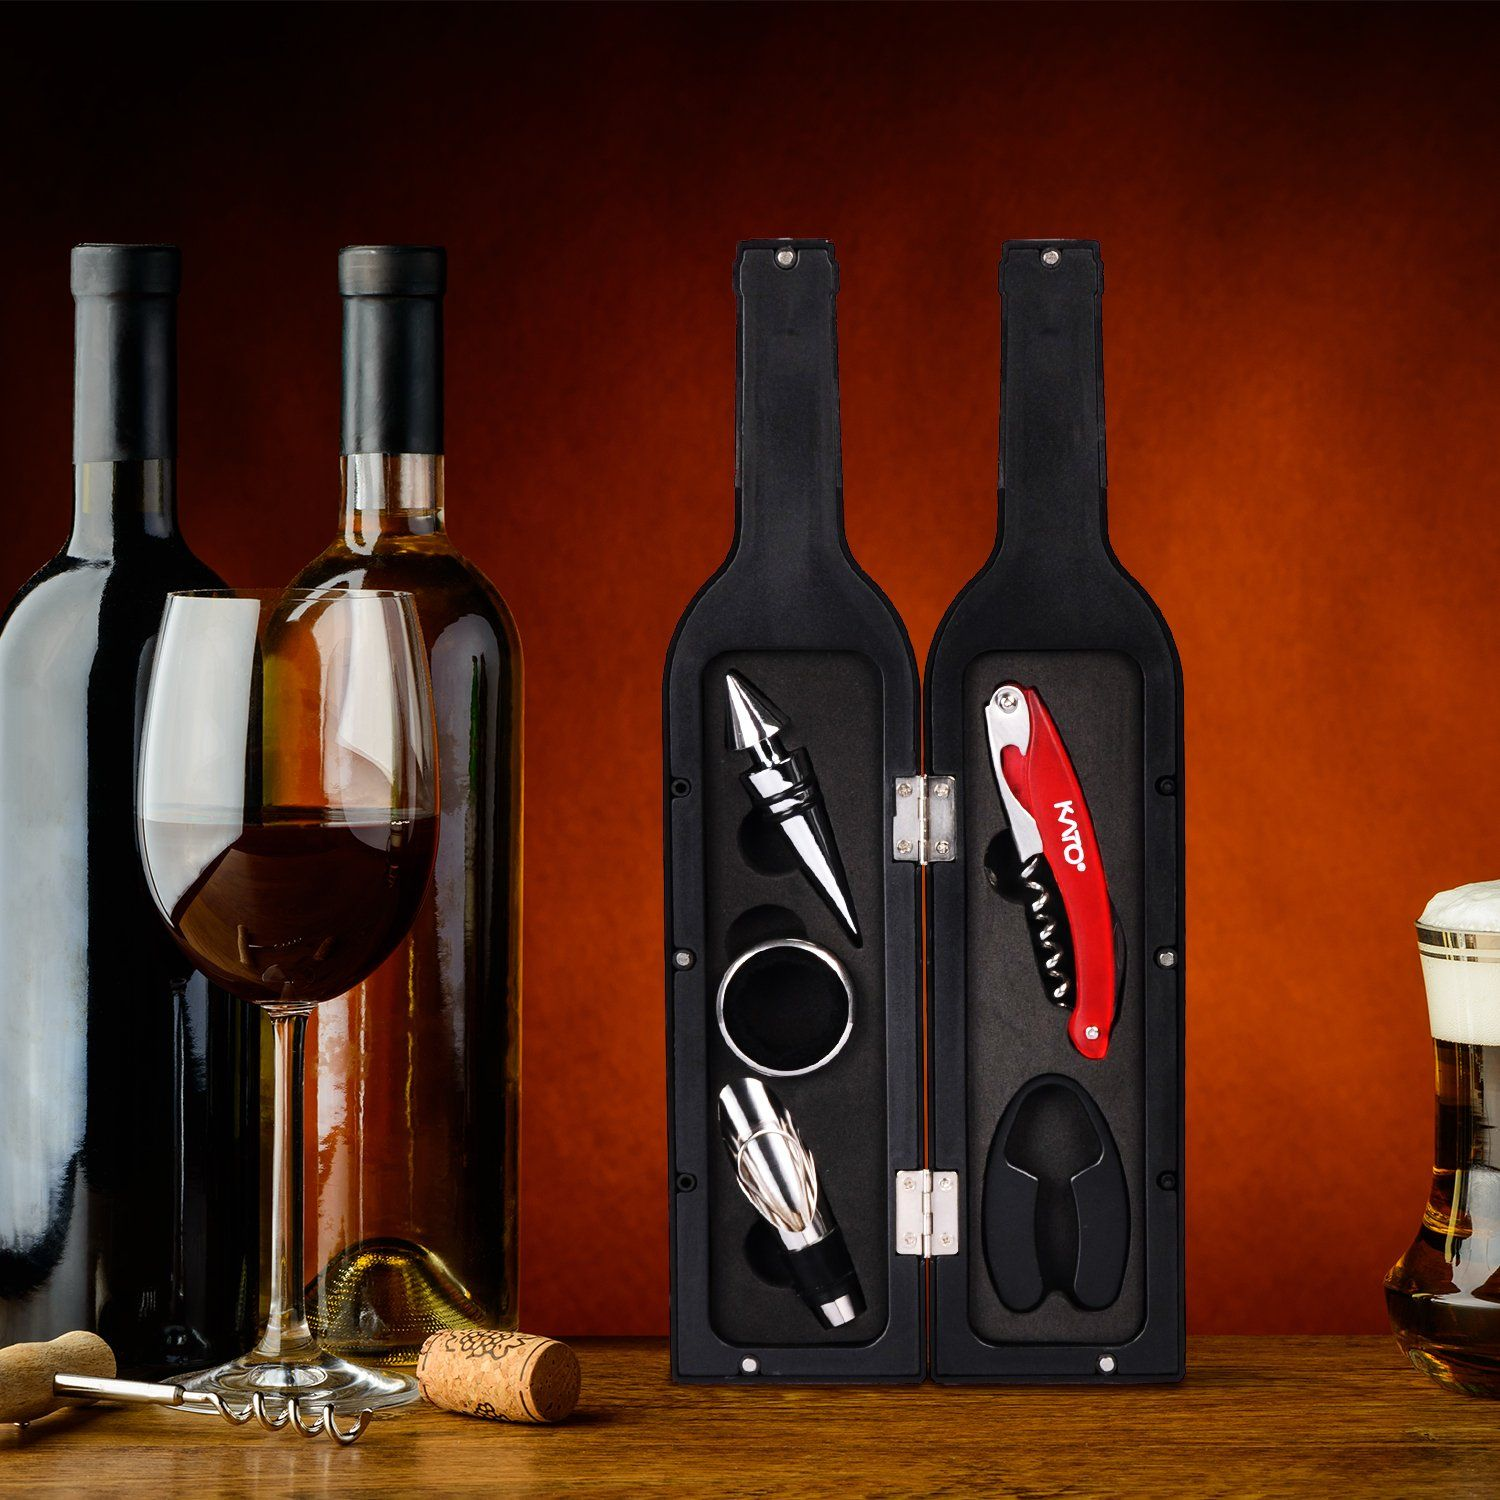 Wine Bottle Accessories Gift Set 5 Pcs Wine Opener Corkscrew Screwpull Kit With Drink Stickers By Ka Gifts For Wine Lovers Wine Corkscrew Perfect Wedding Gift